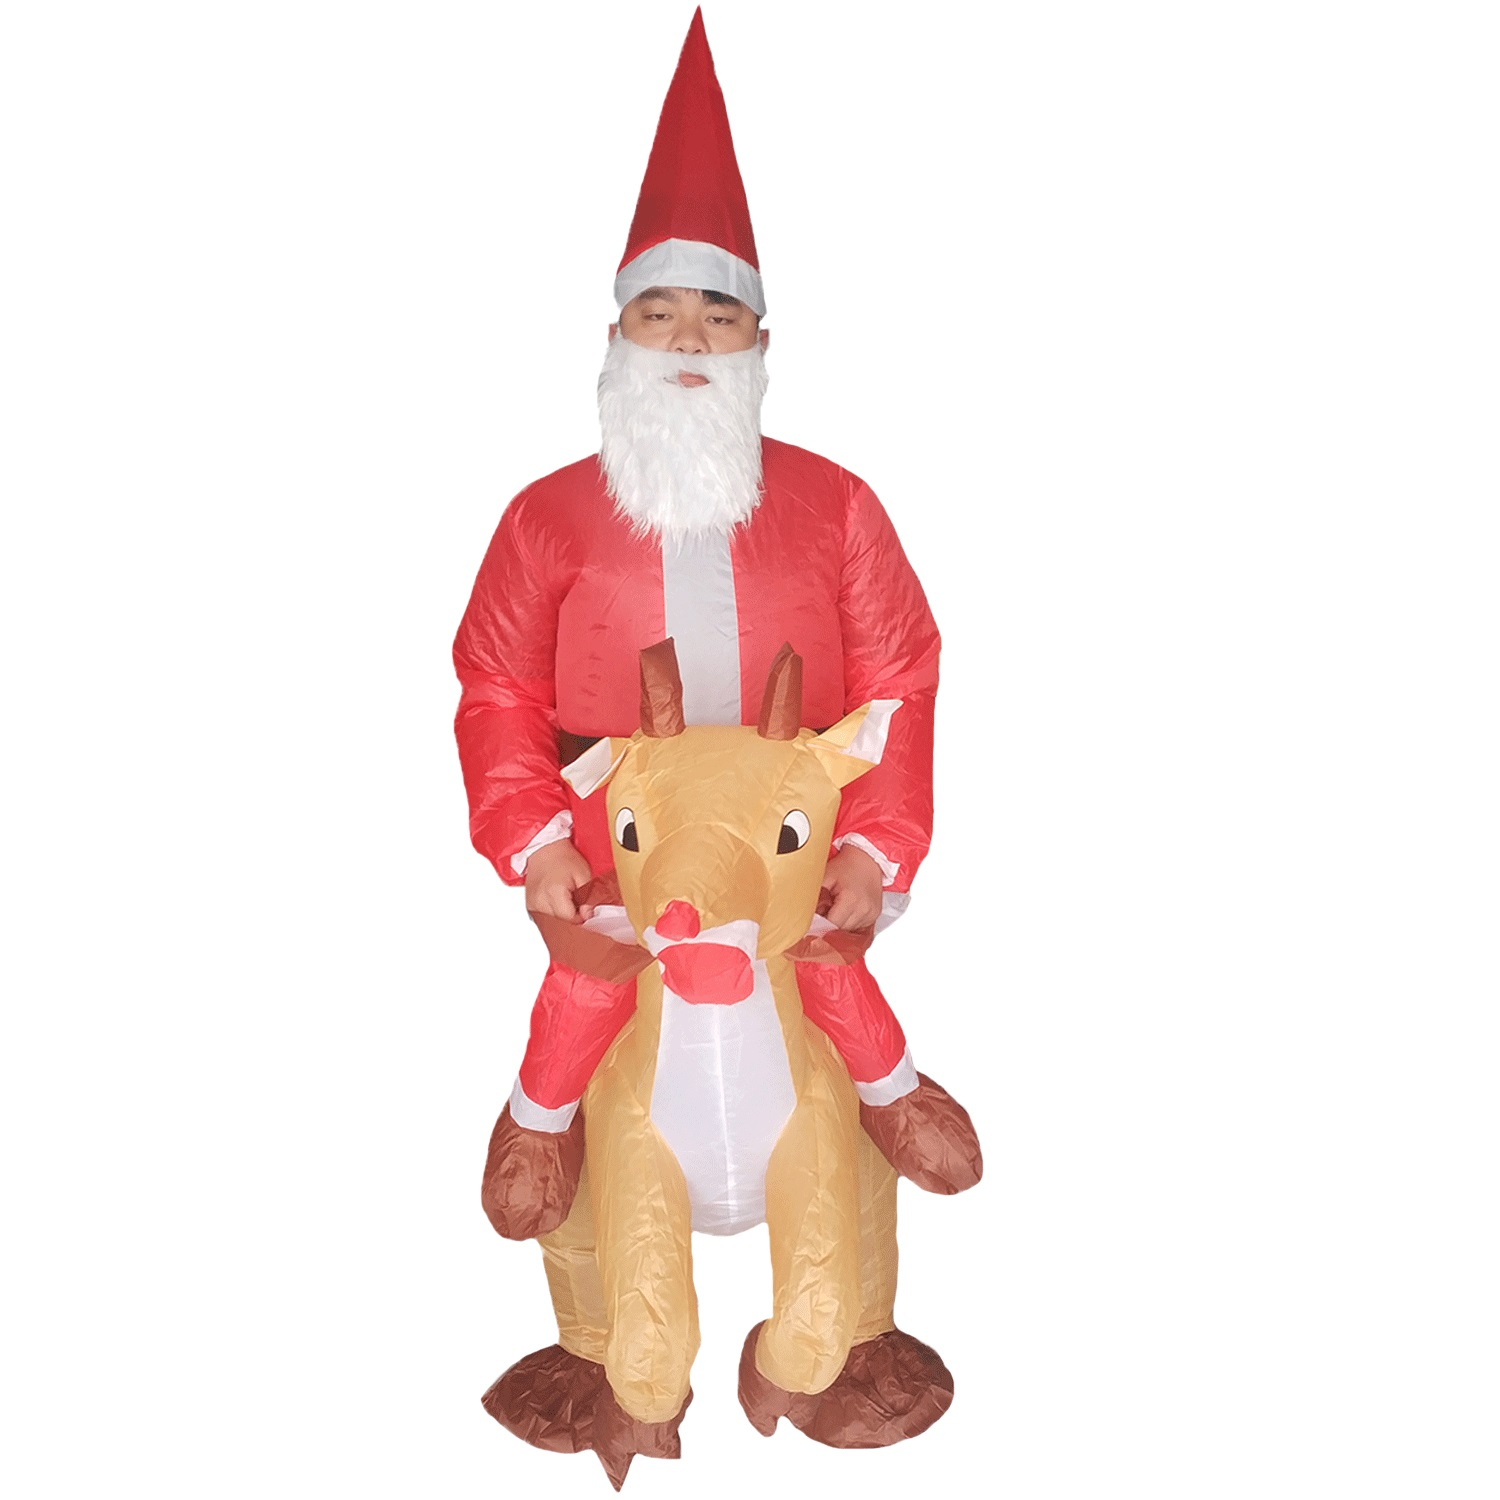 Inflatable Santa Claus Riding Reindeer Costume Adults Party Christmas Mascot Blow Up Costume Women Men Xmas Cosplay Outfit